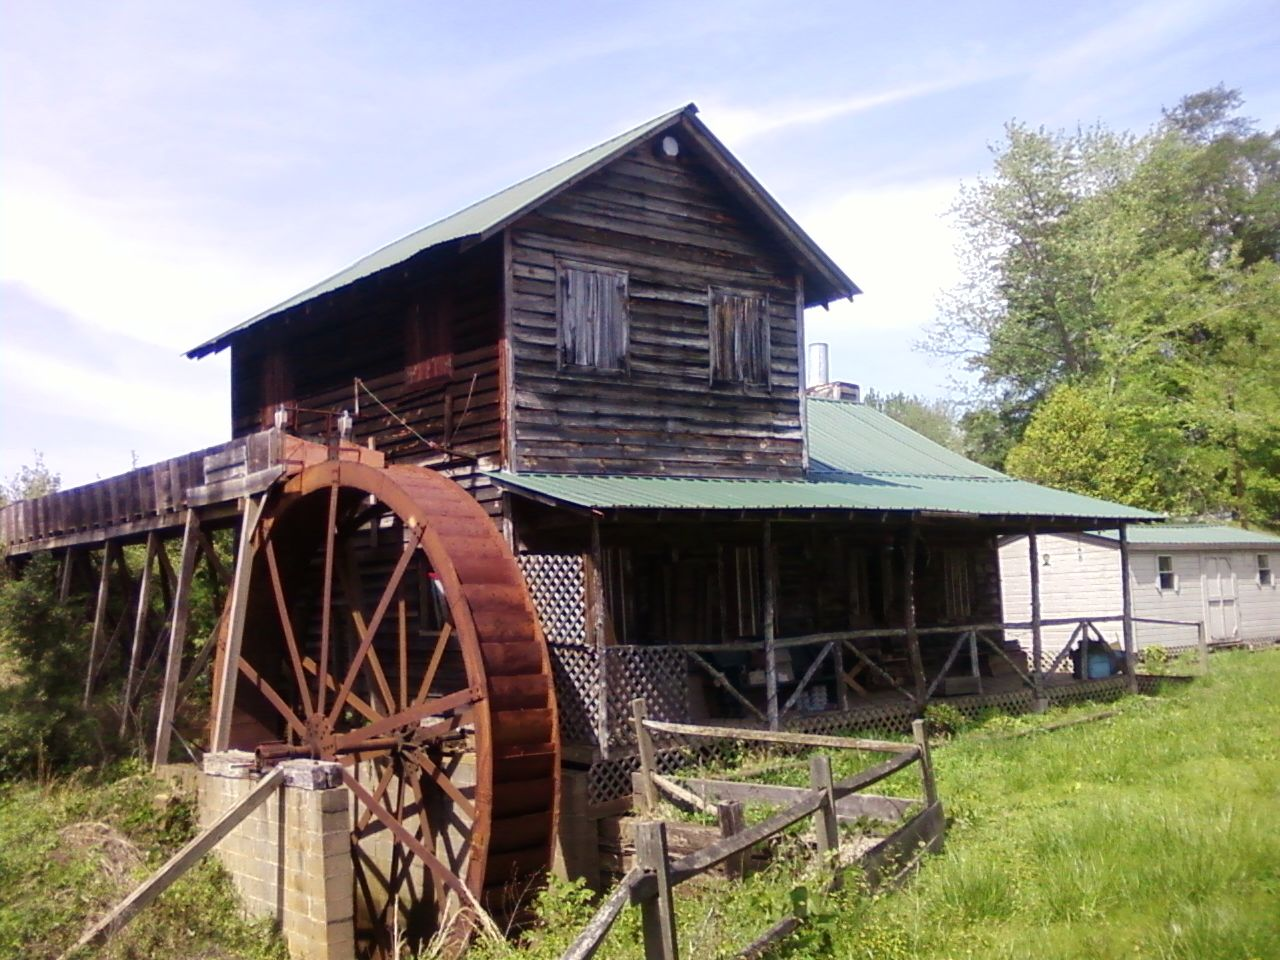 Old Grist Mill - SC 2010 by MFortin